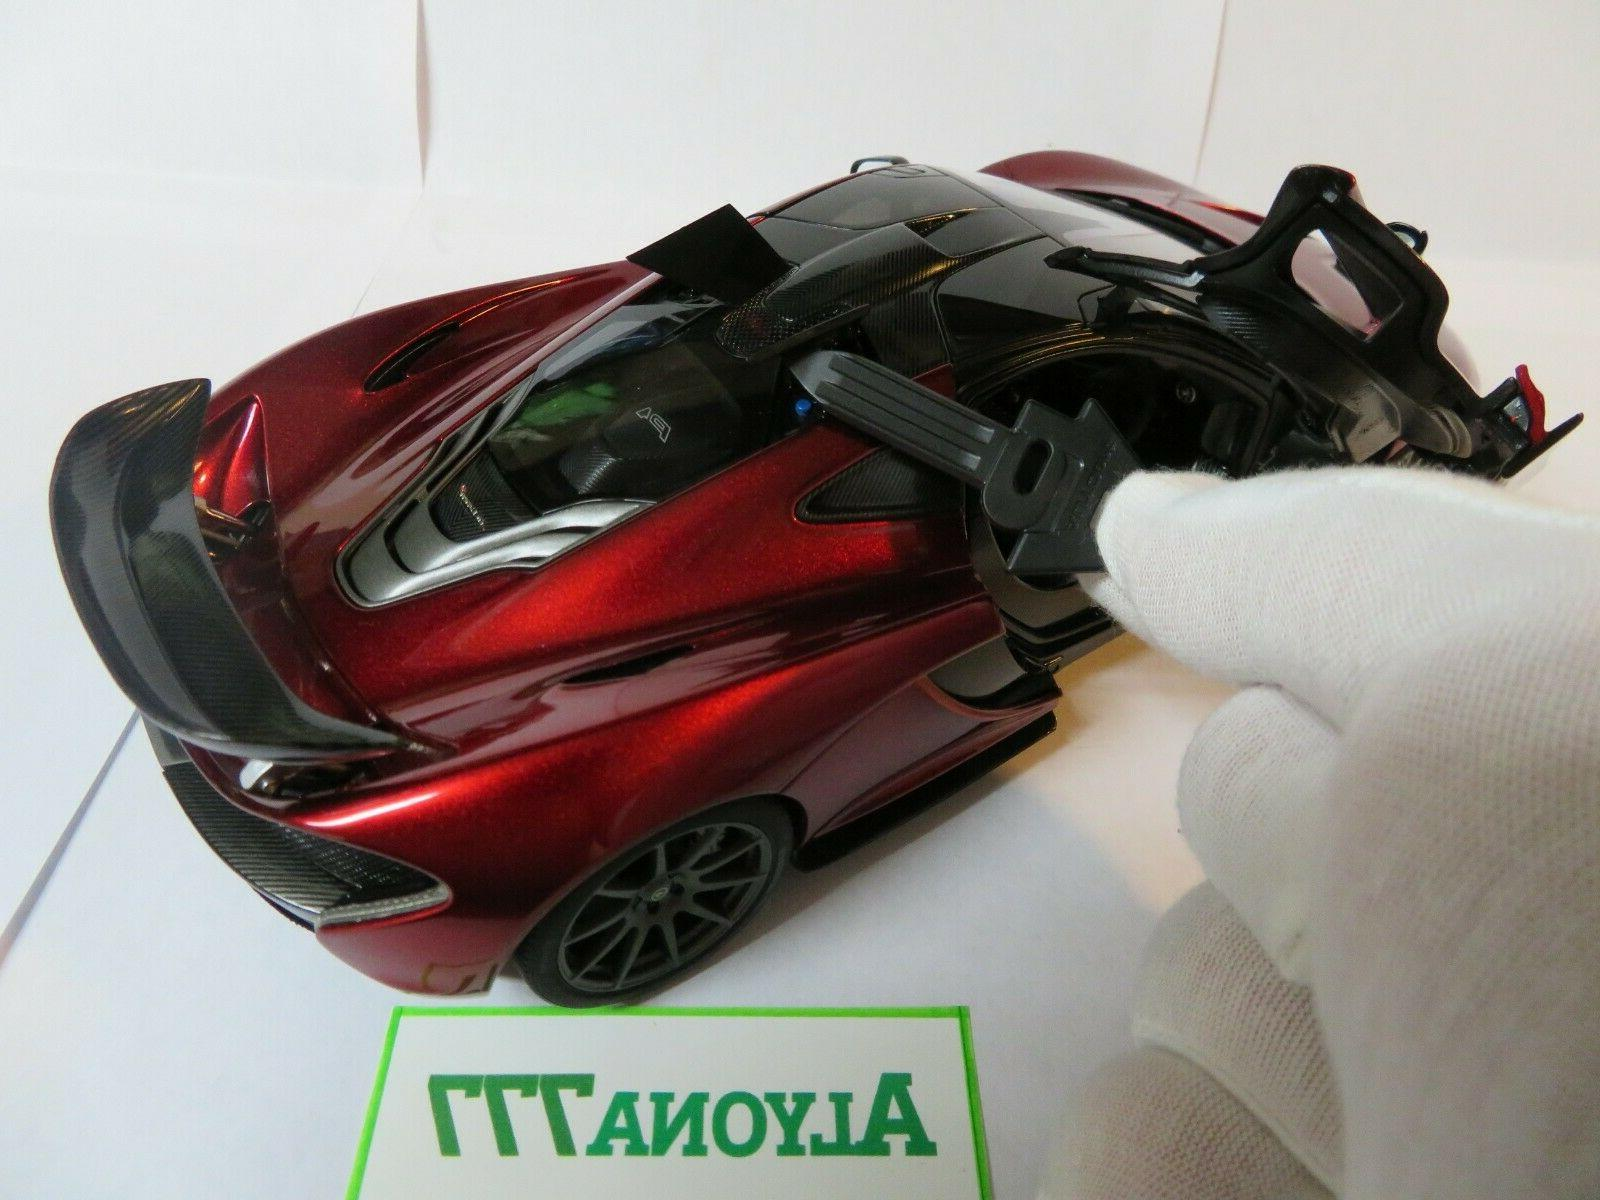 AUTOart Key Opener for Doors, Hood, Trunk for MODEL